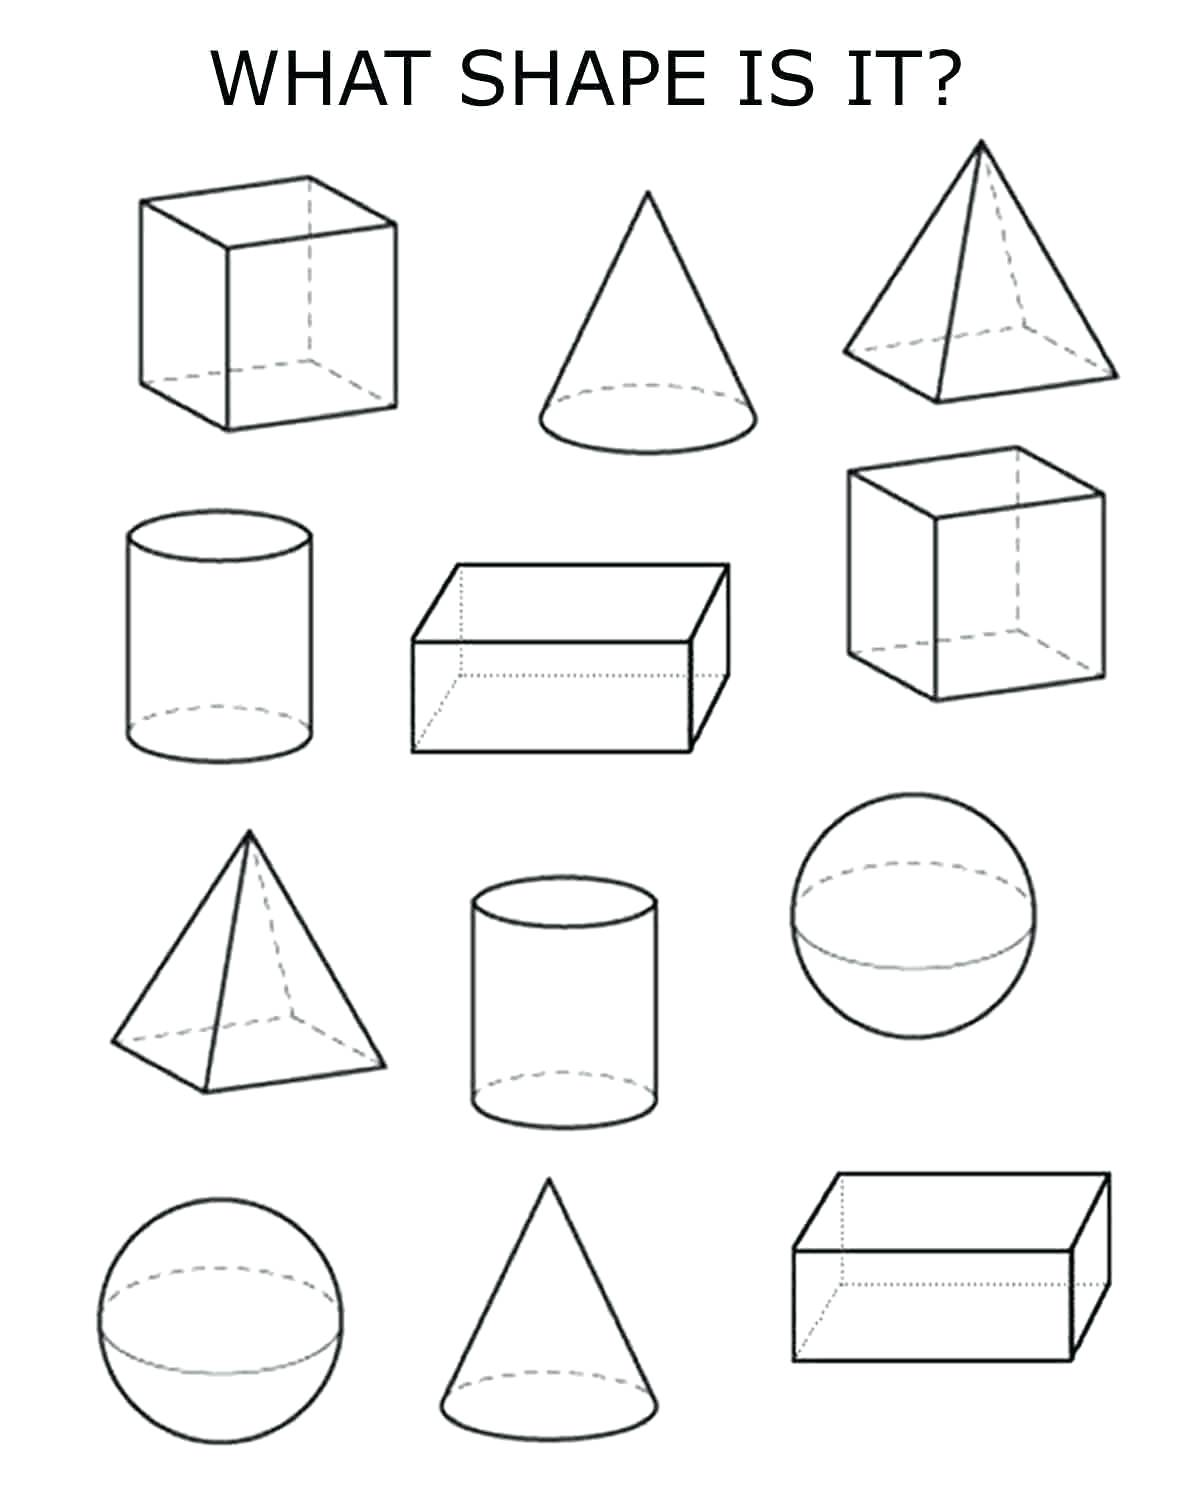 3 Dimensional Shapes Drawing At Getdrawings Free For Personal